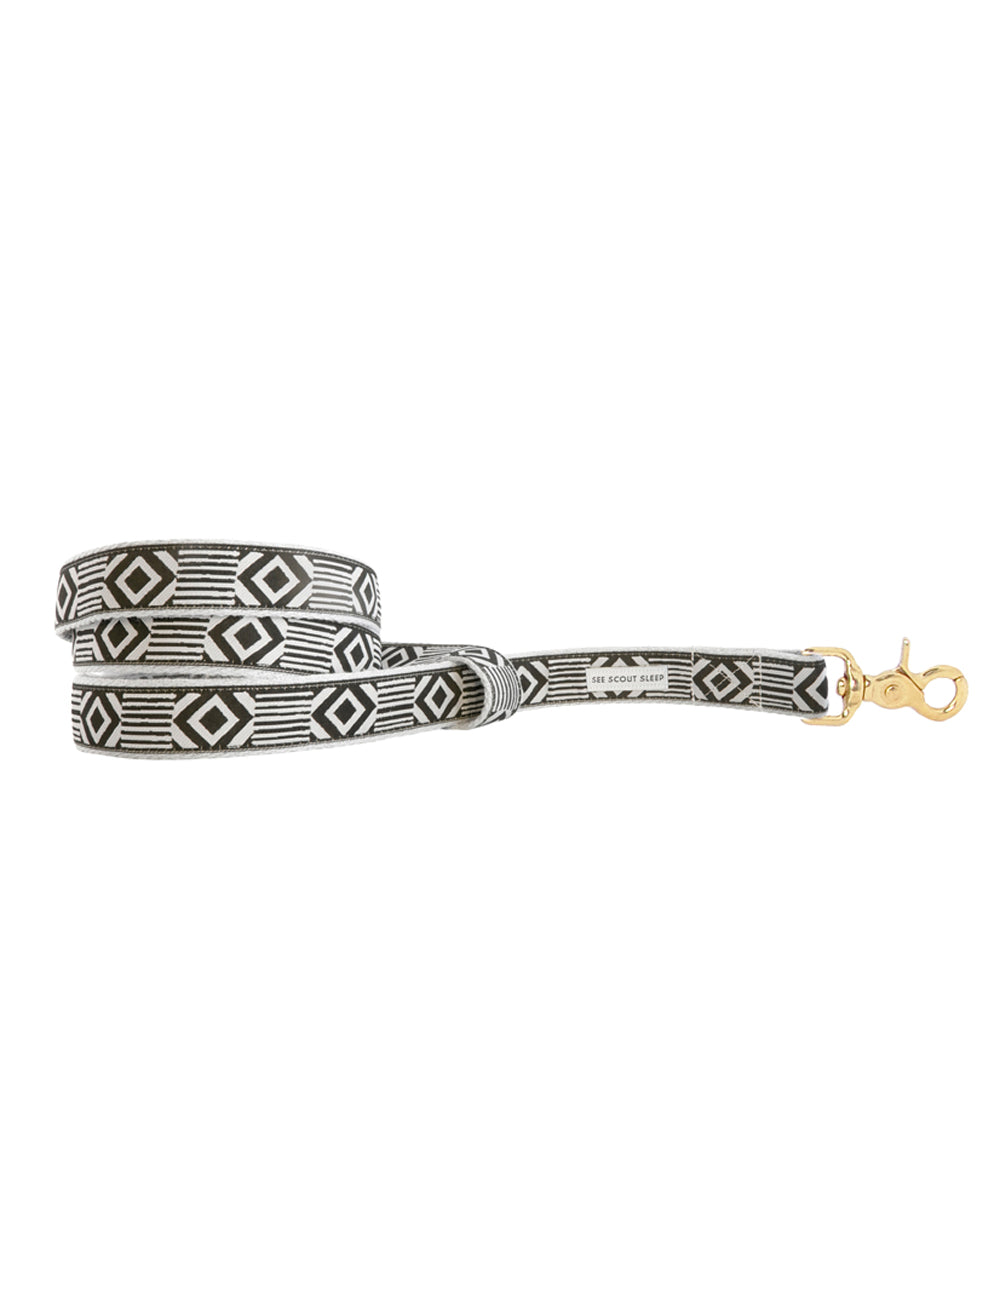 Out Of My Box Leash | Cream & Black